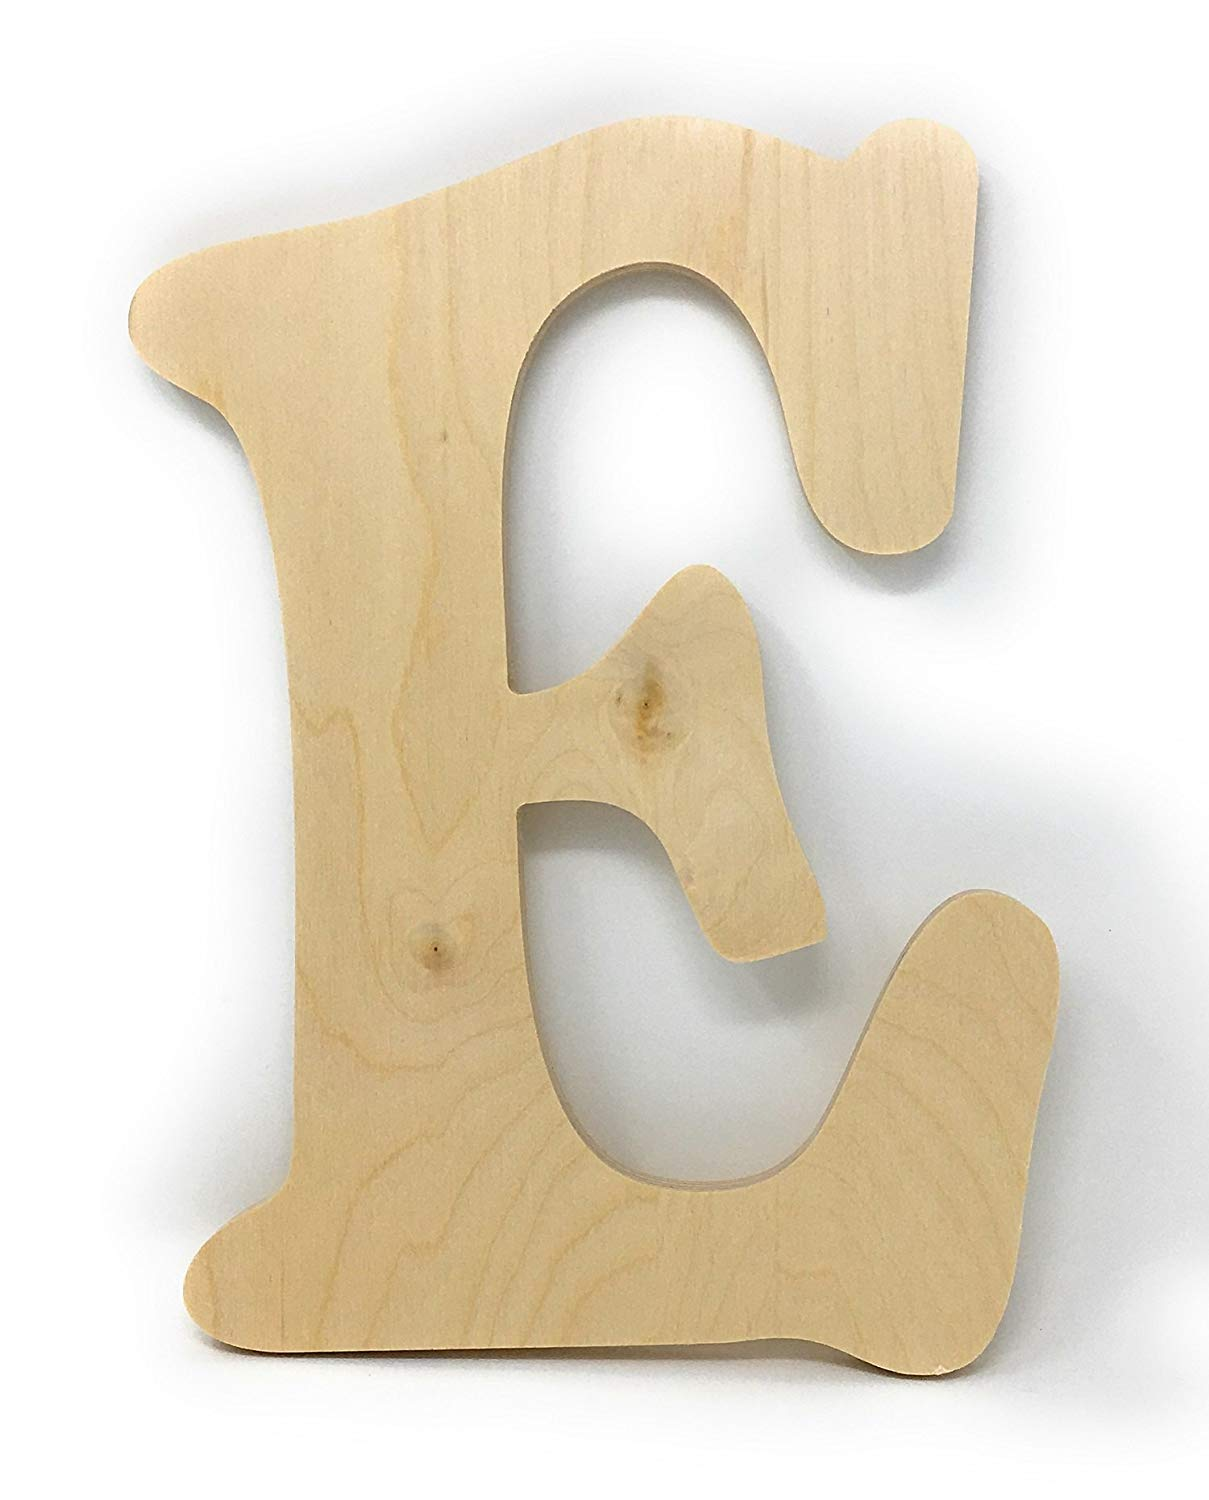 """Gocutouts 10"""" Wooden E Unfinished Wooden Letters Paint Ready Unfinished Wall Decor Craft Cutout (10"""" Baltic Birch, E)"""